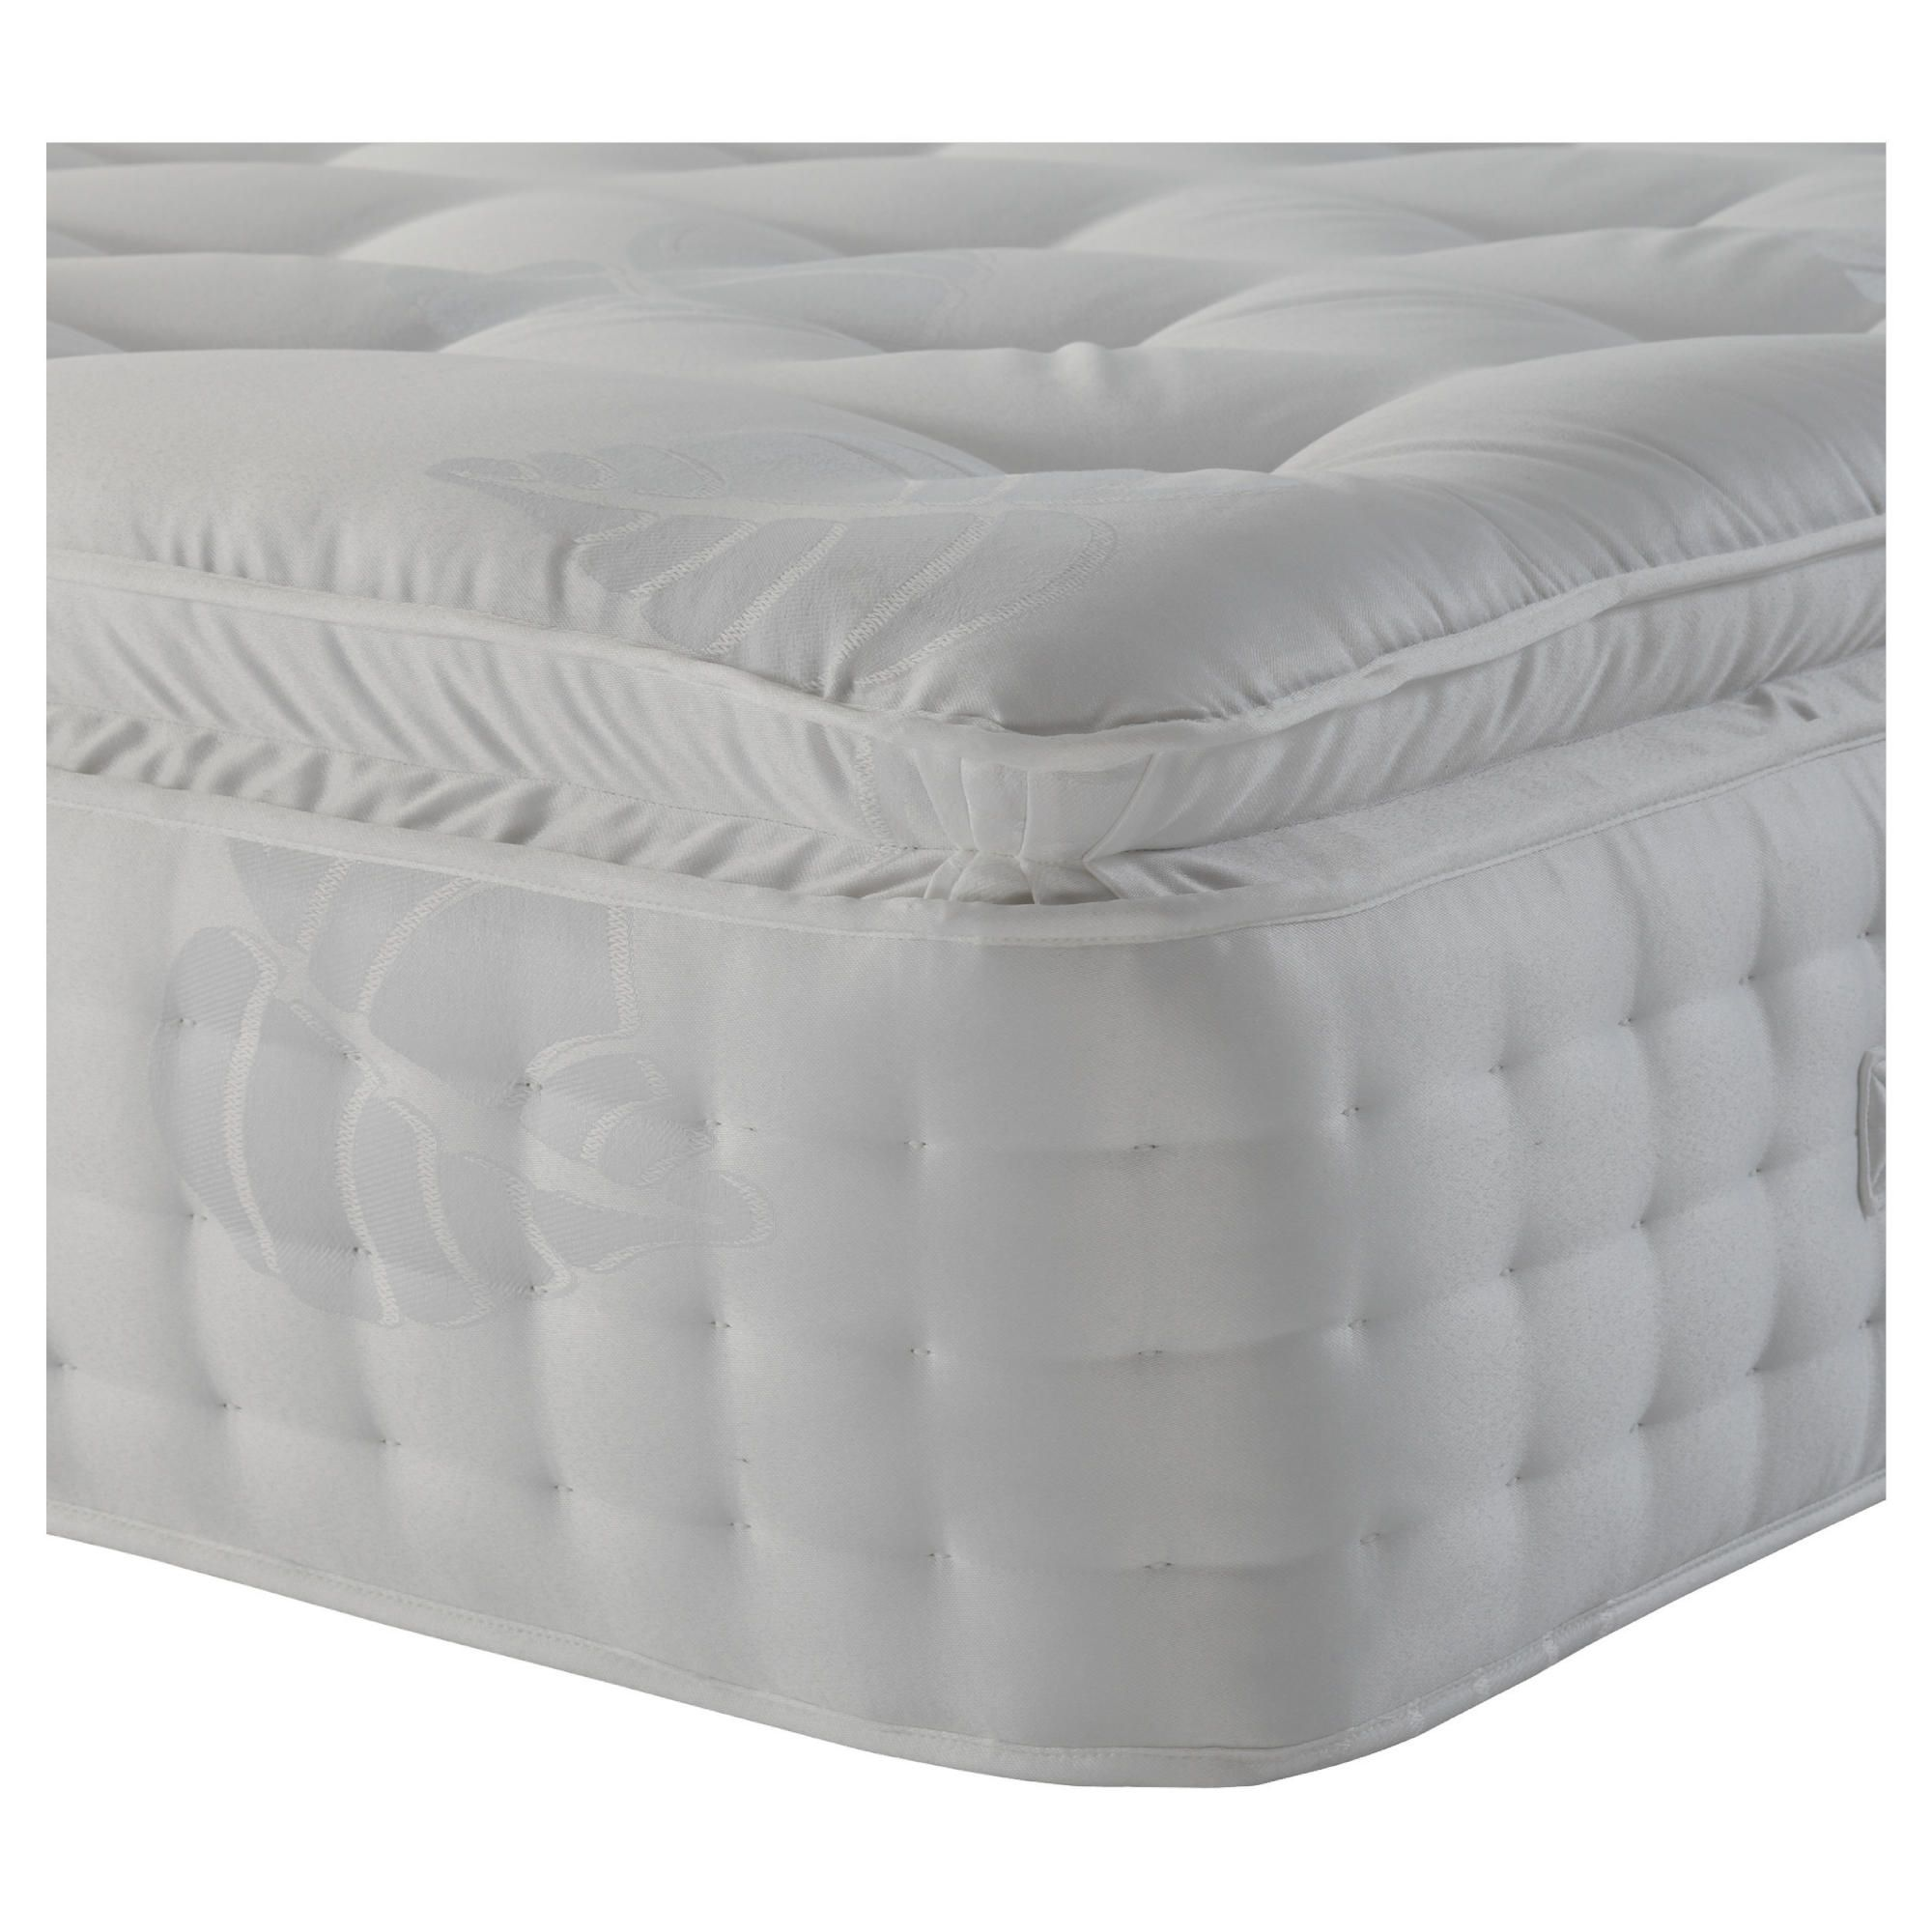 Relyon Luxury 2200 Kingsize Mattress at Tesco Direct